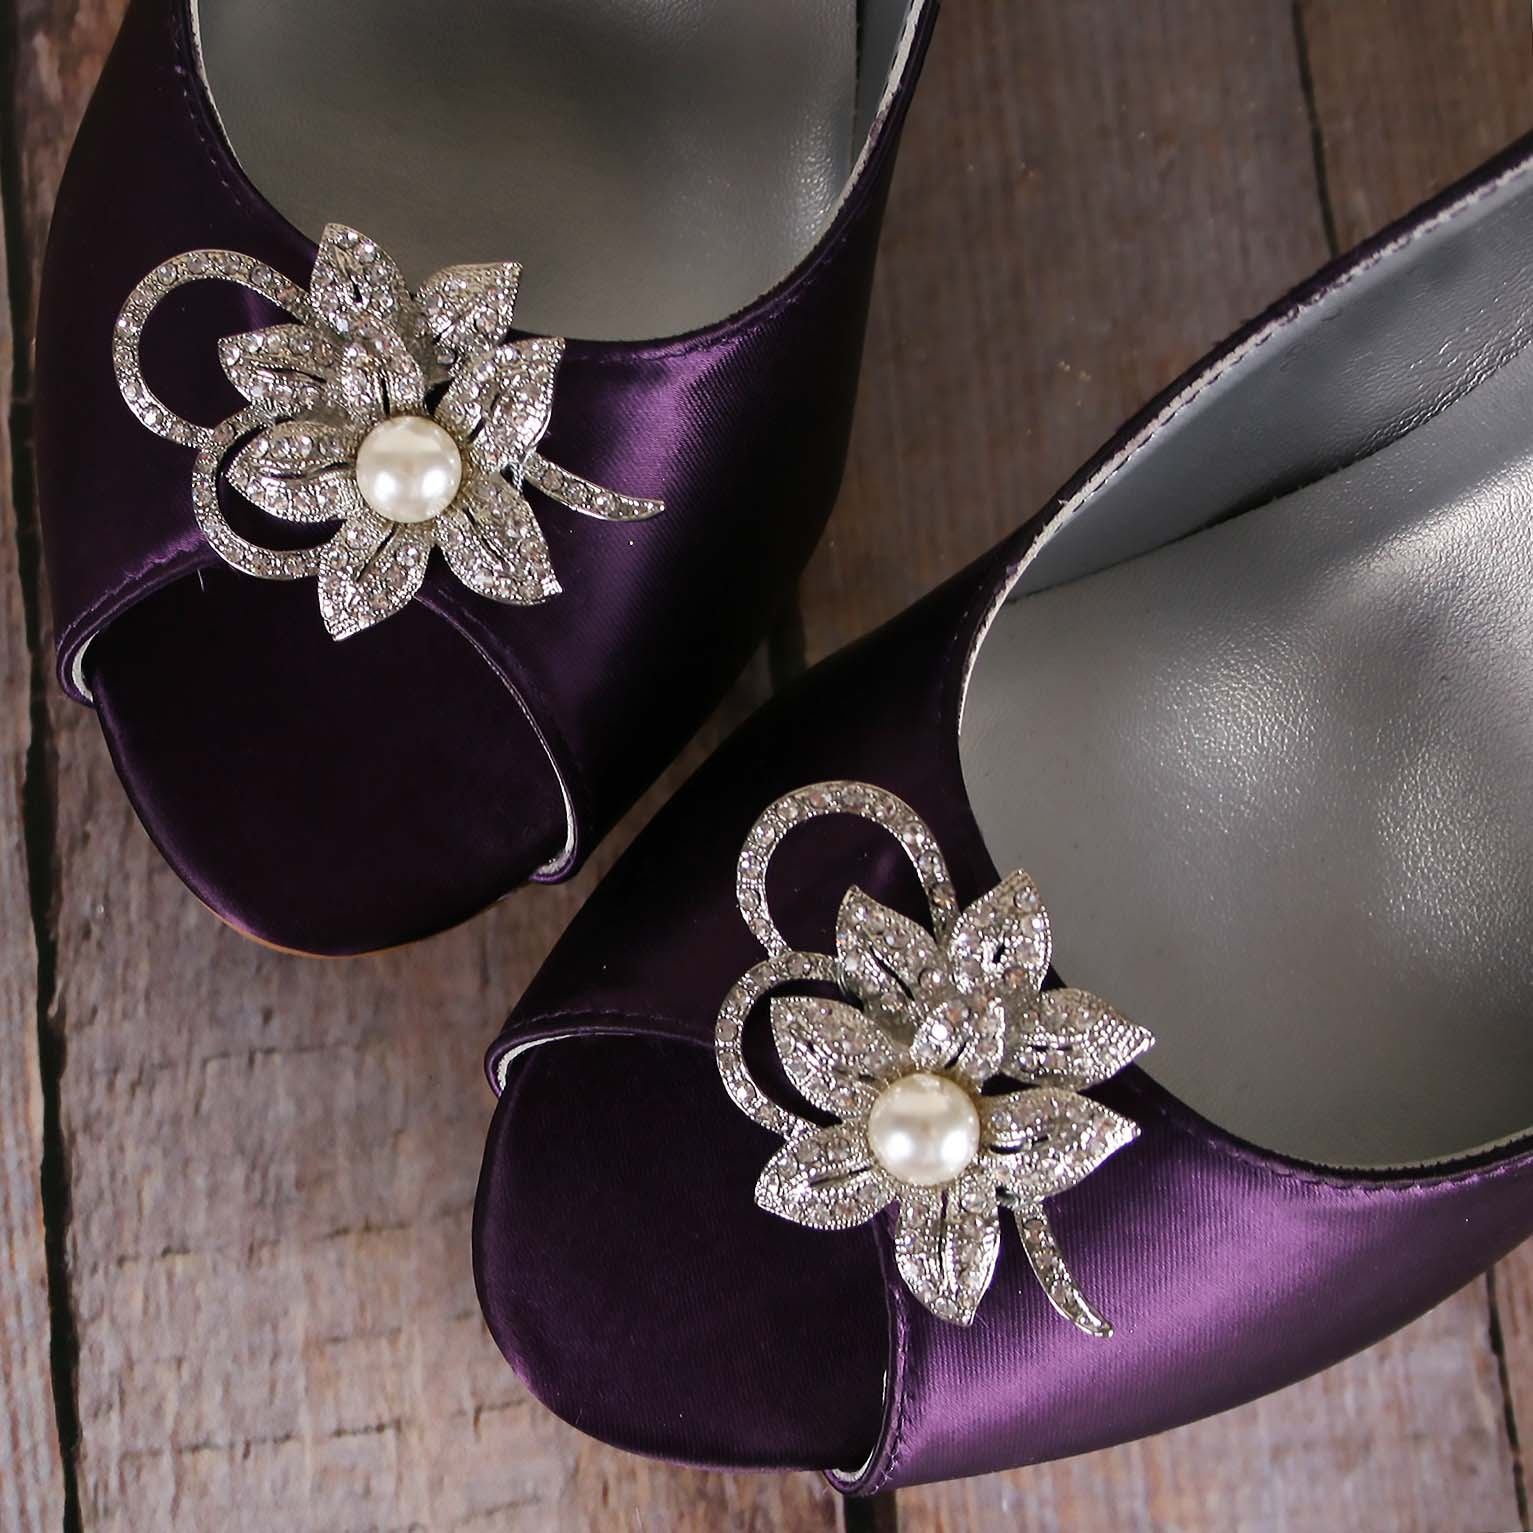 Eggplant Purple Wedges for Bride with Silver Crystal Flower Adornment Custom Wedding Shoes by Ellie Wren